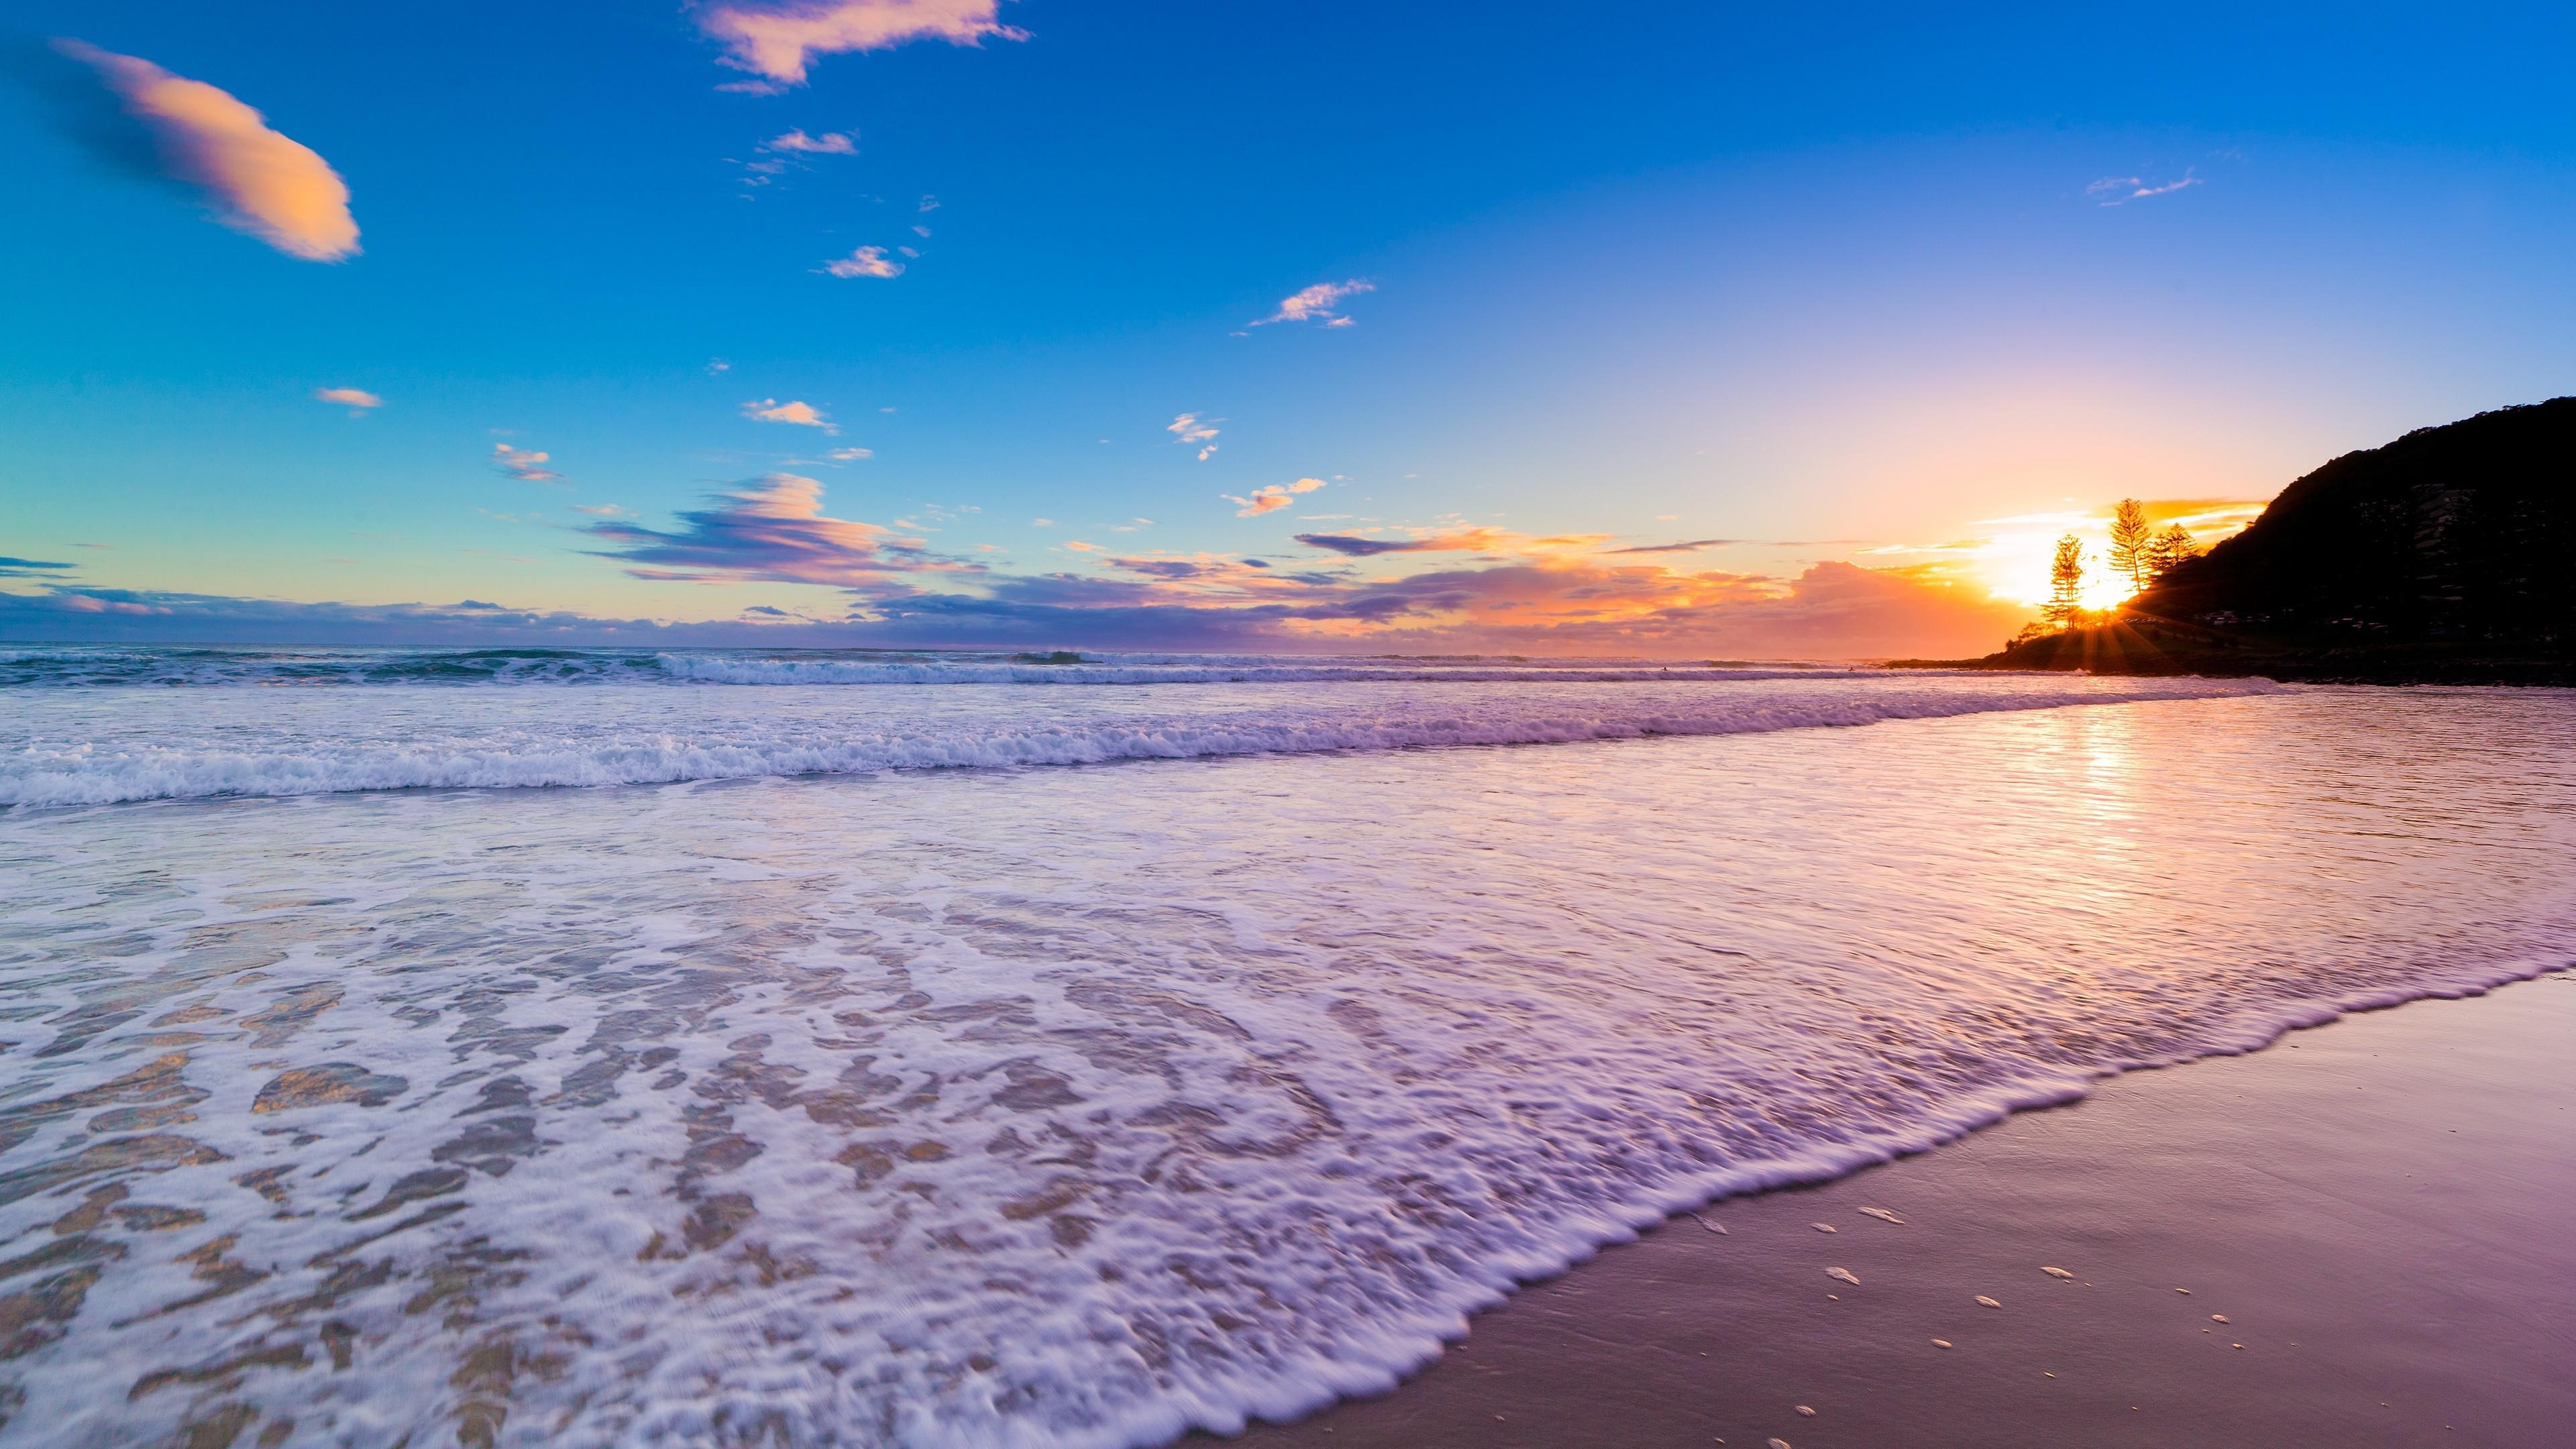 Beautiful Beach Sunset 4k Hd Nature 4k Wallpapers Images Backgrounds Photos And Pictures